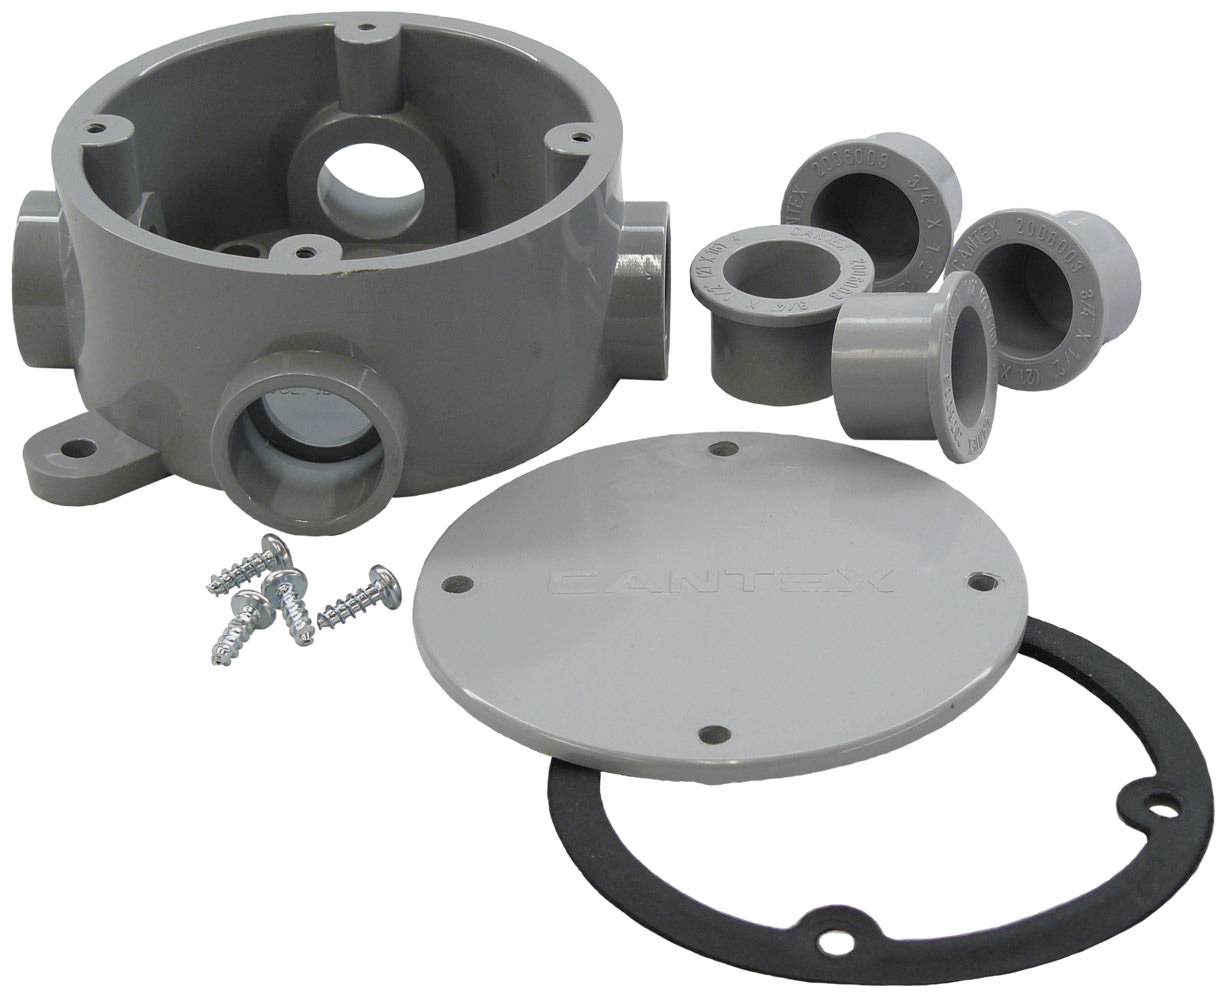 Cantex 5133690 Round Junction Box, 3/4 in. Hub, 4 Hubs, w/Cover, PVC,""